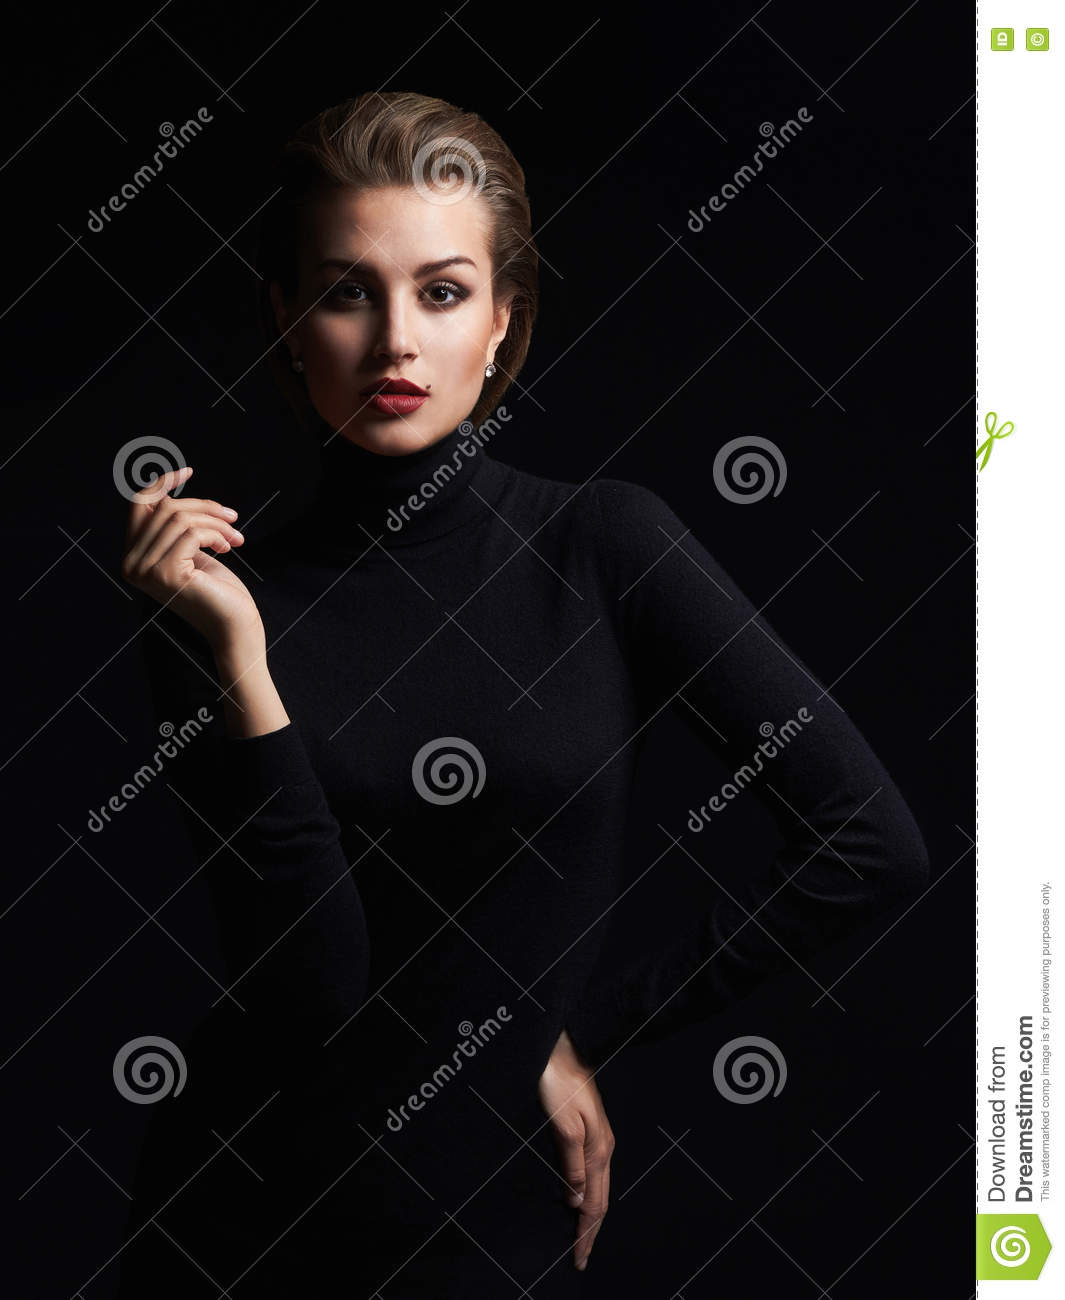 Beautiful Girl With Short Hair Stock Image Image Of Emotion